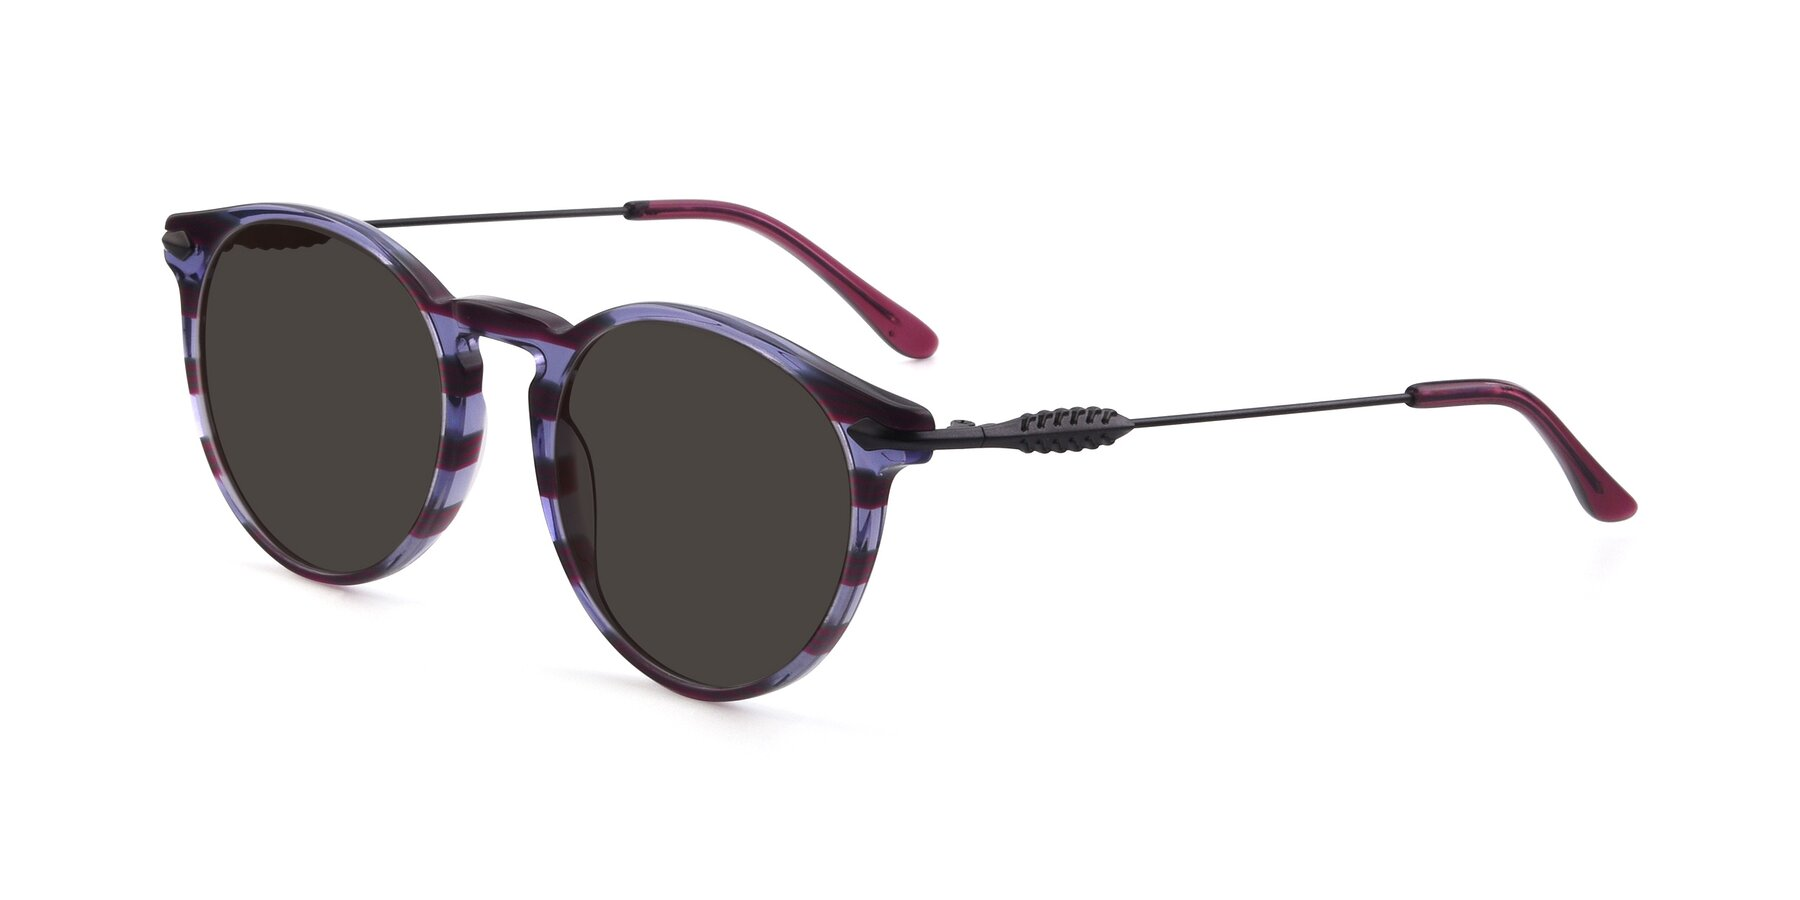 Angle of 17660 in Stripe Purple with Gray Tinted Lenses